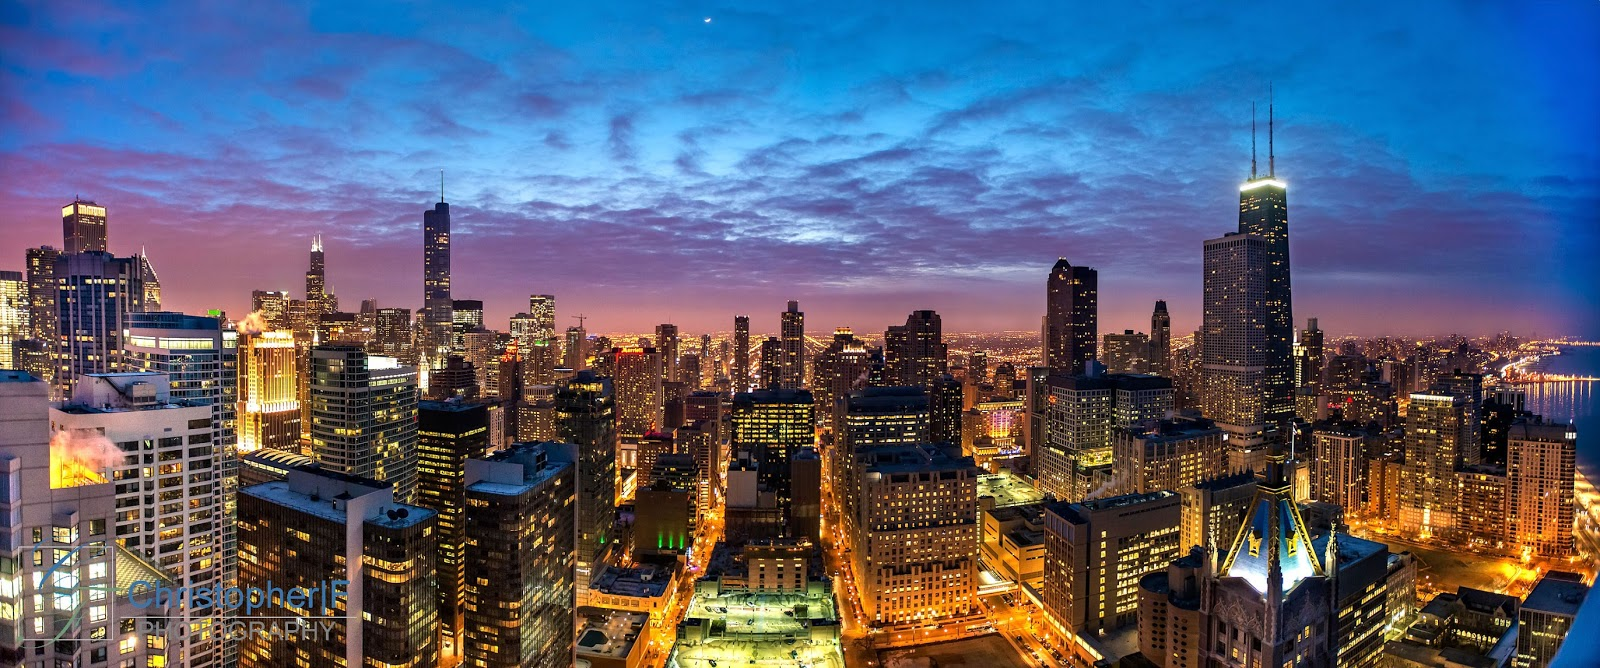 Chicago Cityscape at Blue Hour